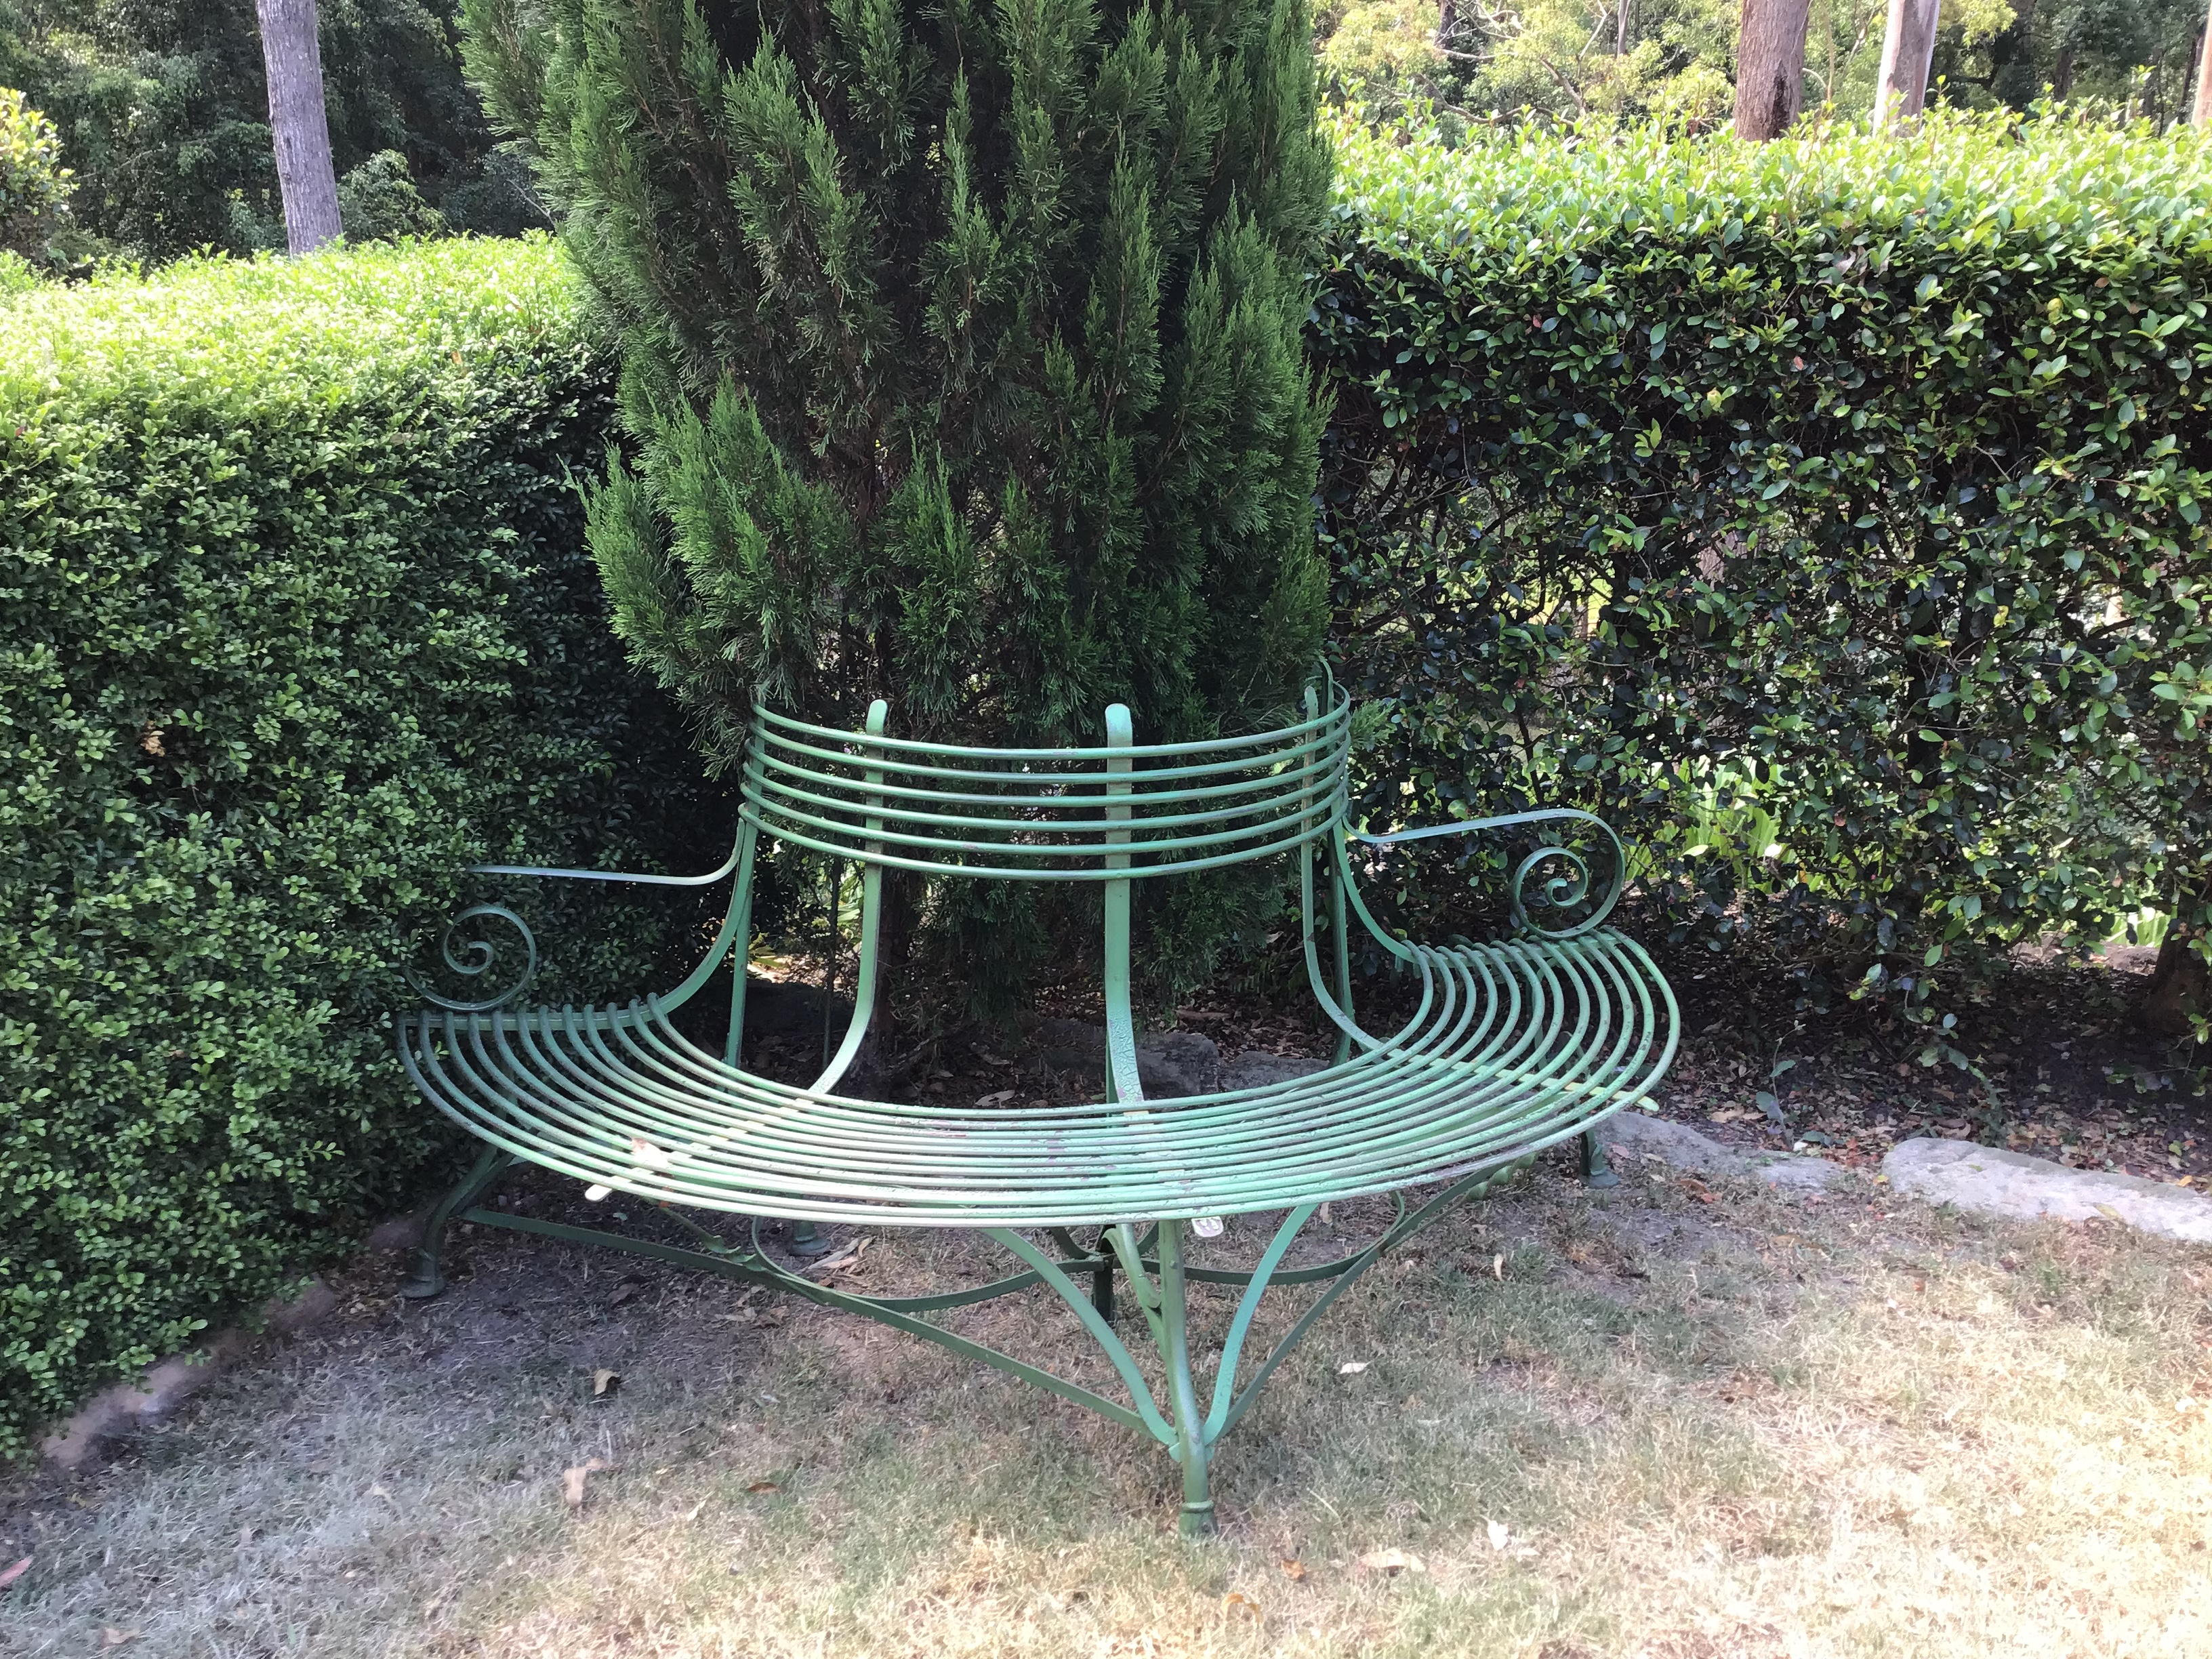 Wondrous Arras Half Tree Seat 1995 Objects Of Interest Squirreltailoven Fun Painted Chair Ideas Images Squirreltailovenorg